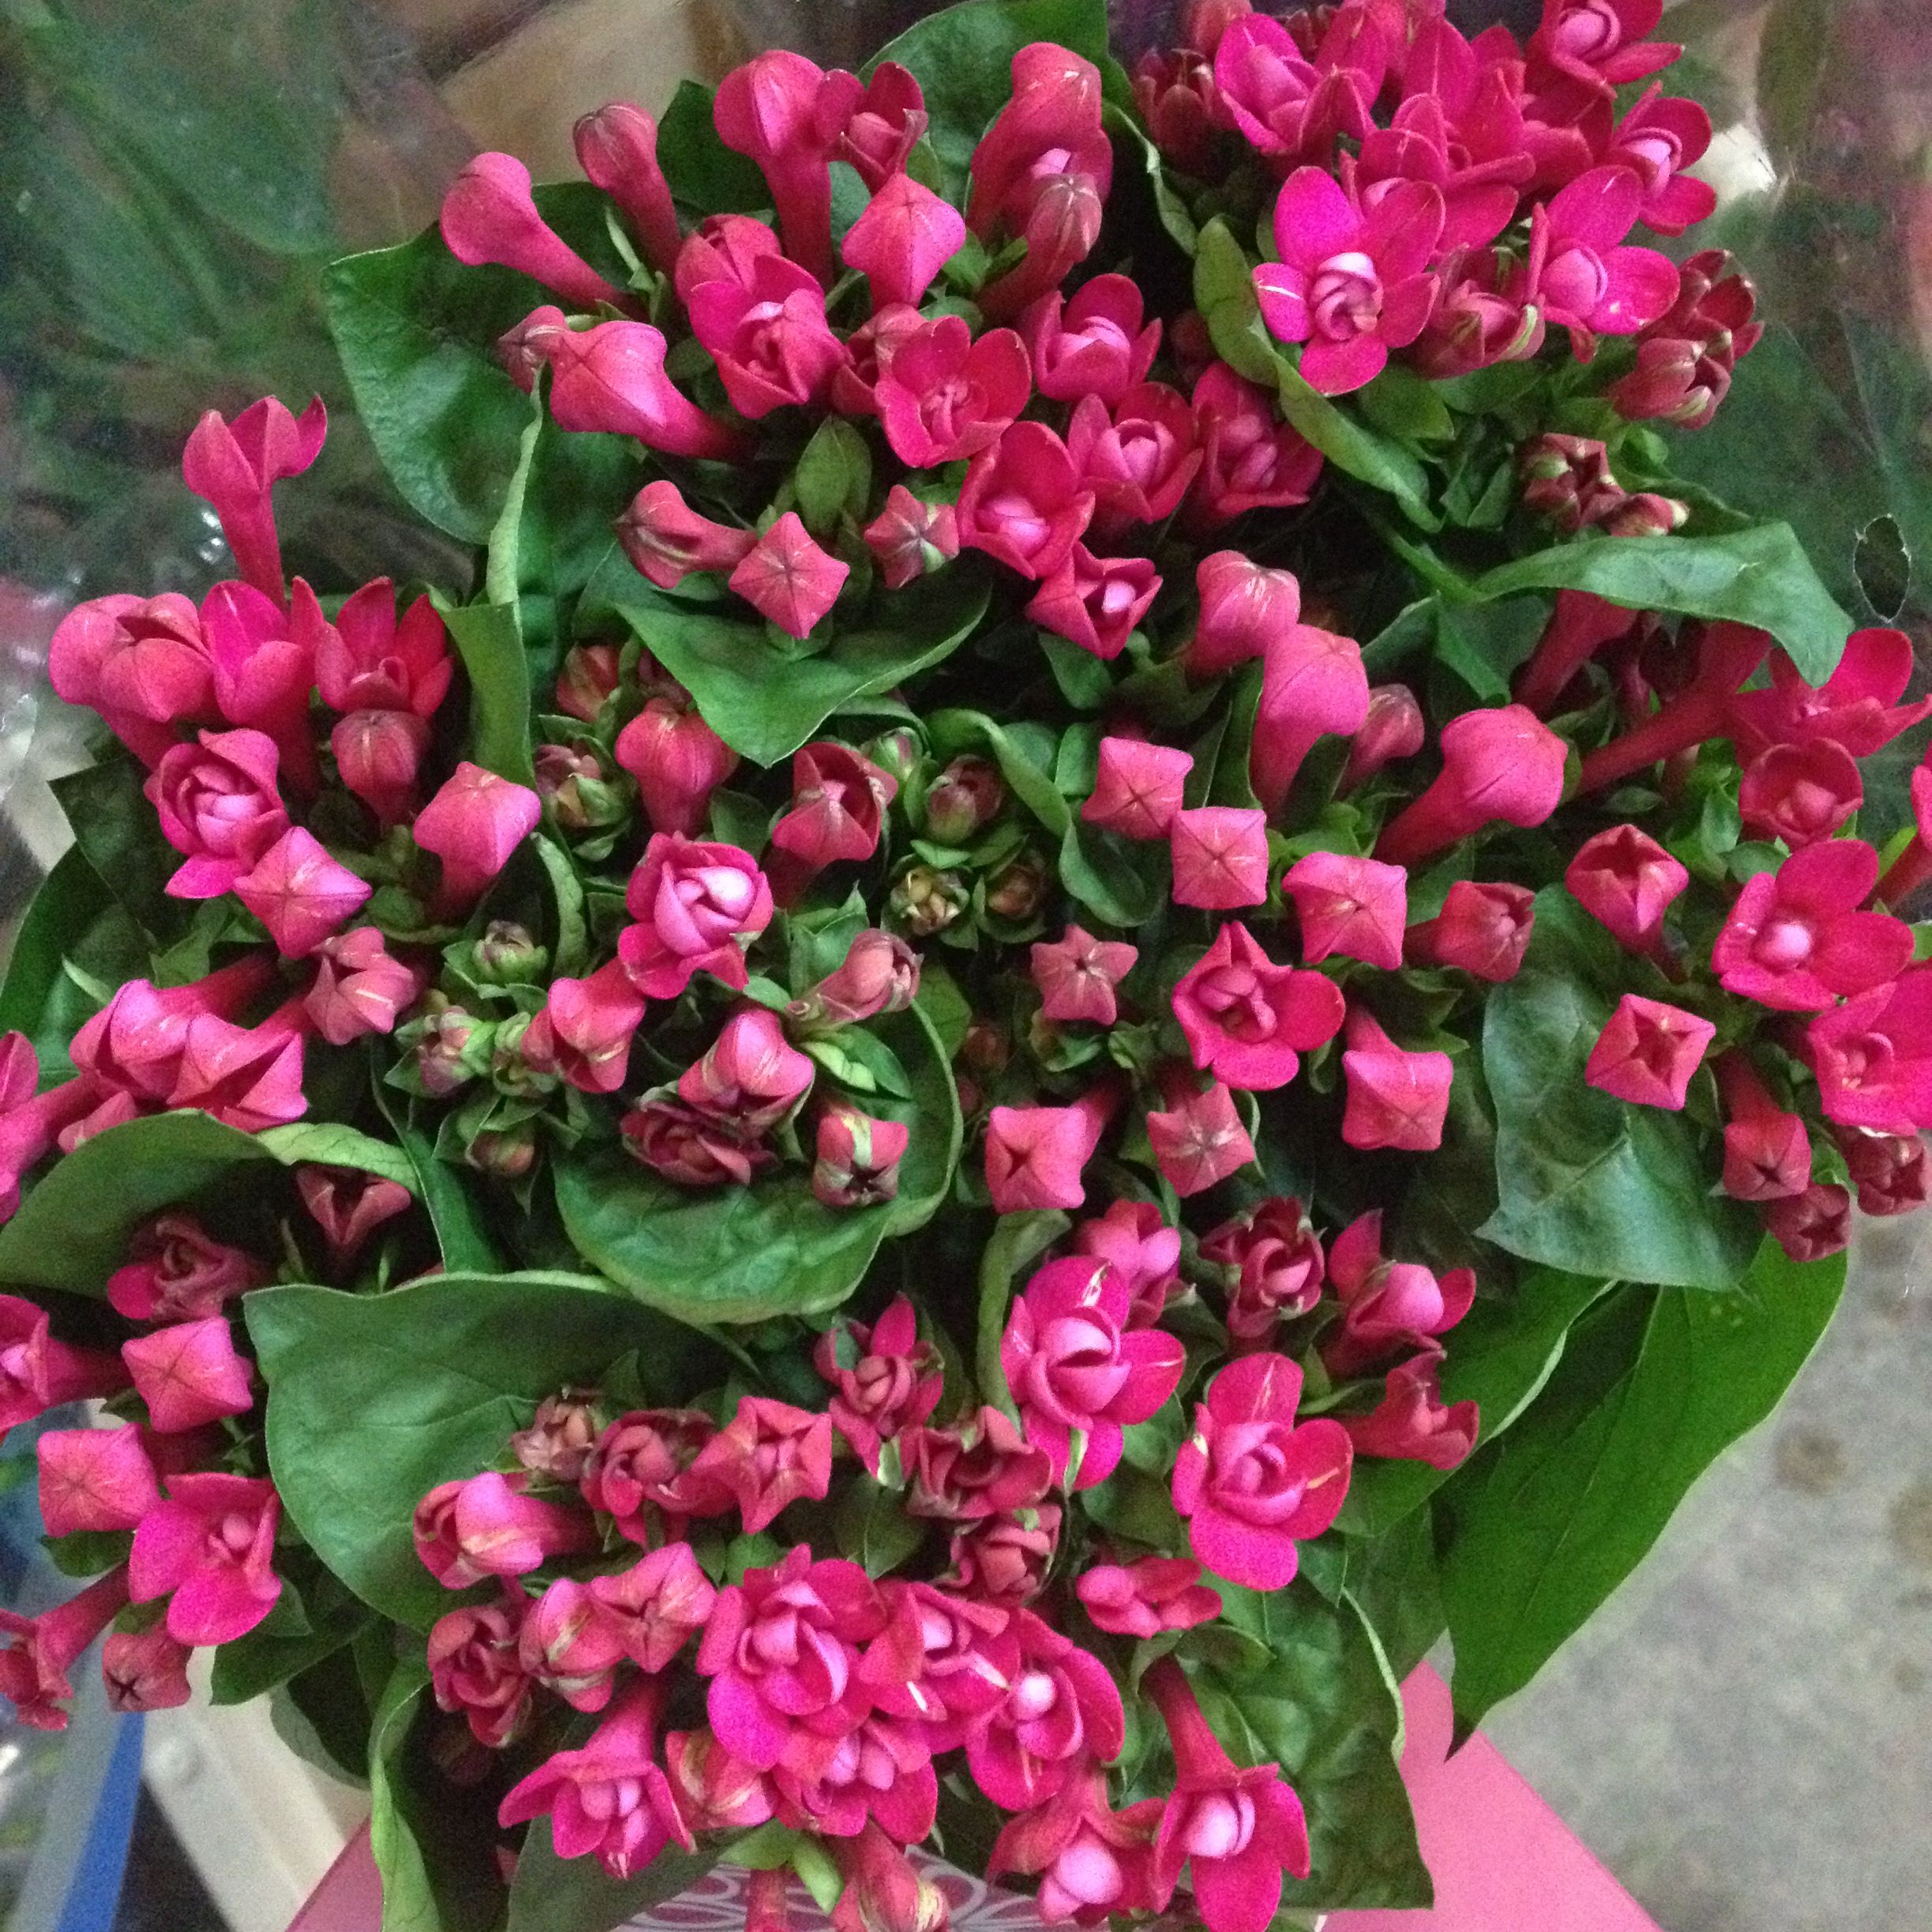 Bouvardia Double Variety Called Diamond Cerise Sold In Bunches Of 10 Stems From The Flowermonger The Wholesale Floral Home Delivery Serv Diy Wedding Flowers Flower Arrangements Wedding Flowers